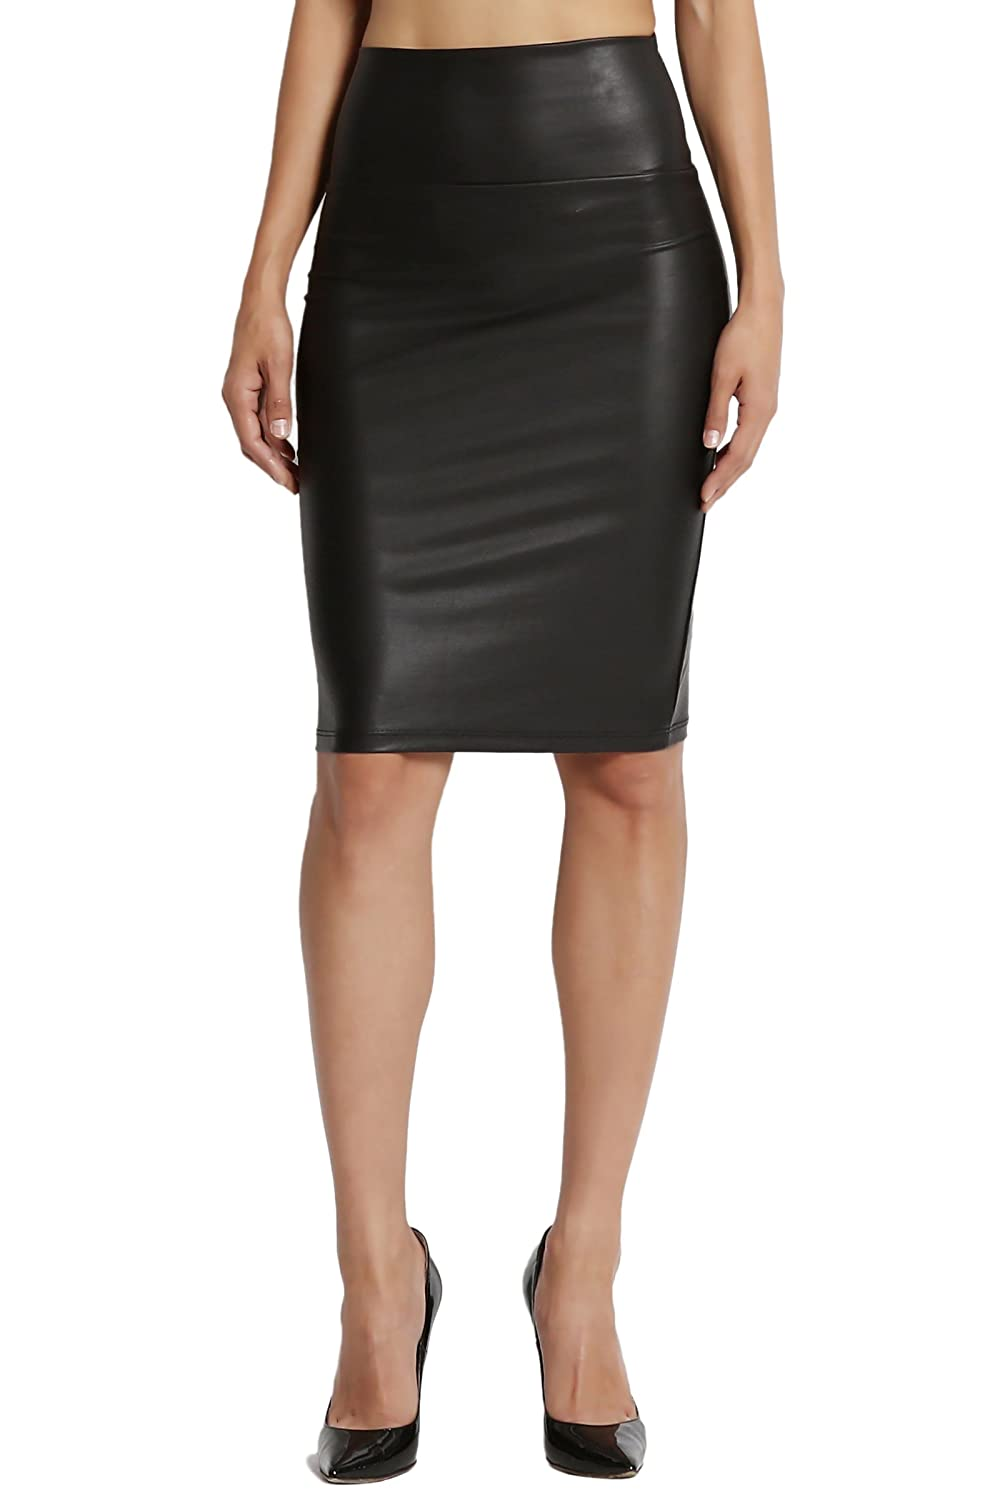 TheMogan Faux Leather High Waisted Bodycon Knee Length Fitted Pencil Skirt MS0798-A